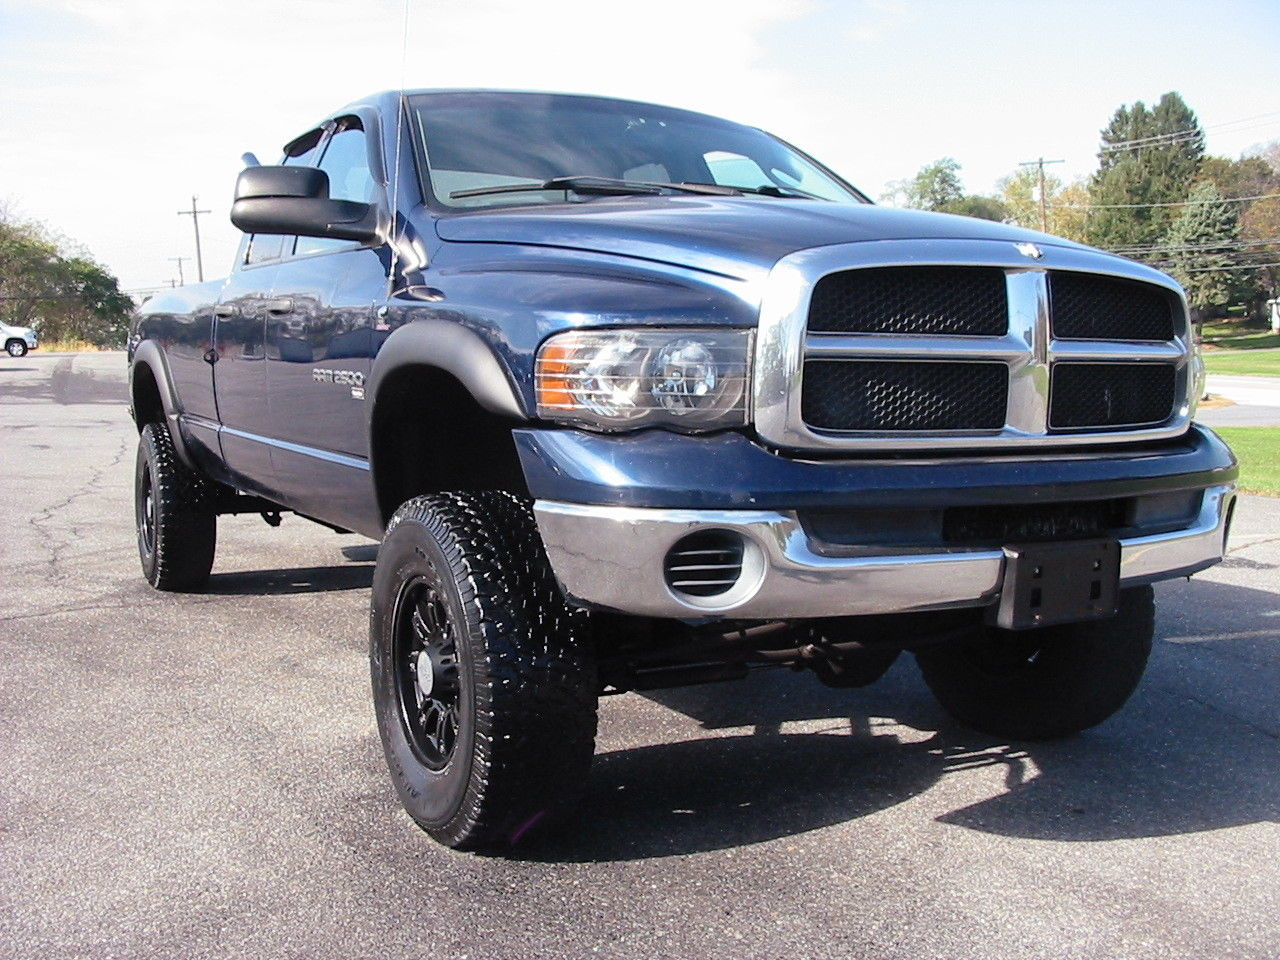 Cummins power 2003 Dodge Ram 2500 SLT 6 speed lifted for sale